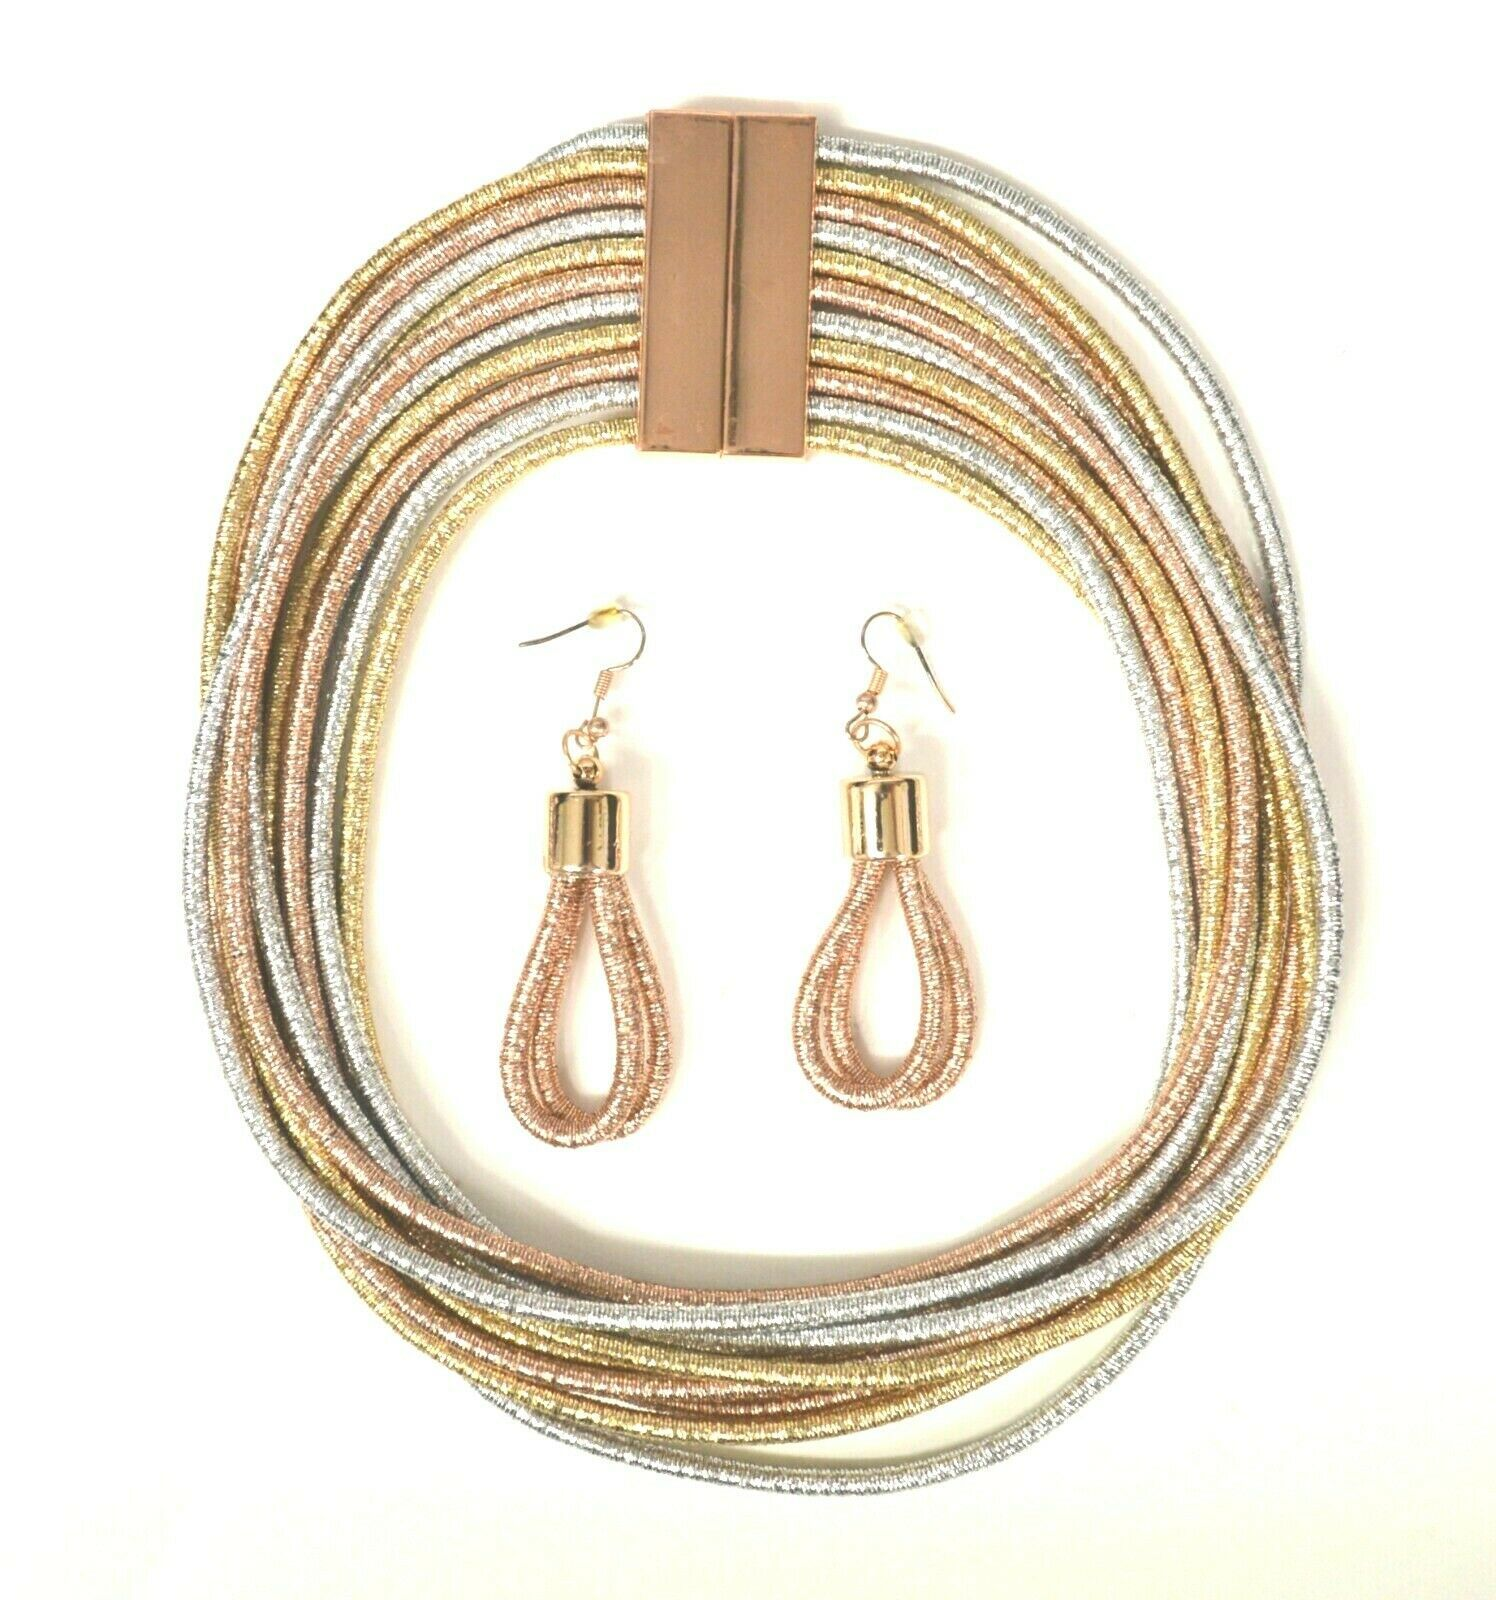 Primary image for STATEMENT COIL ROPE DRAPE MULTI LAYER MAGNETIC CHOKER NECKLACE EARRING SET GOLD